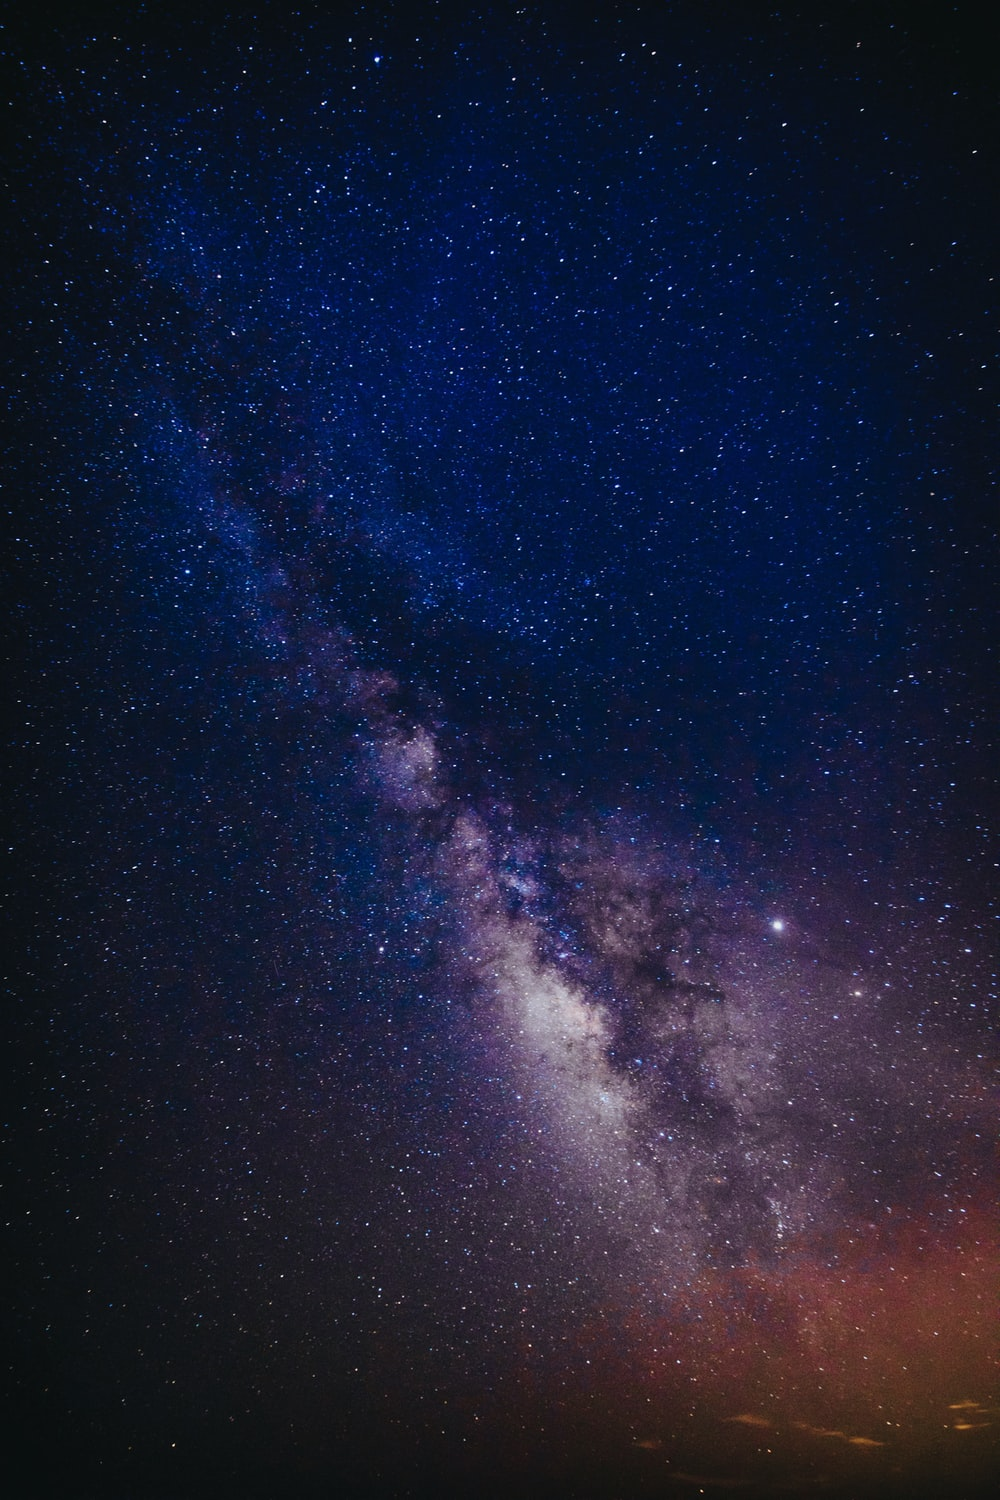 milky way at night